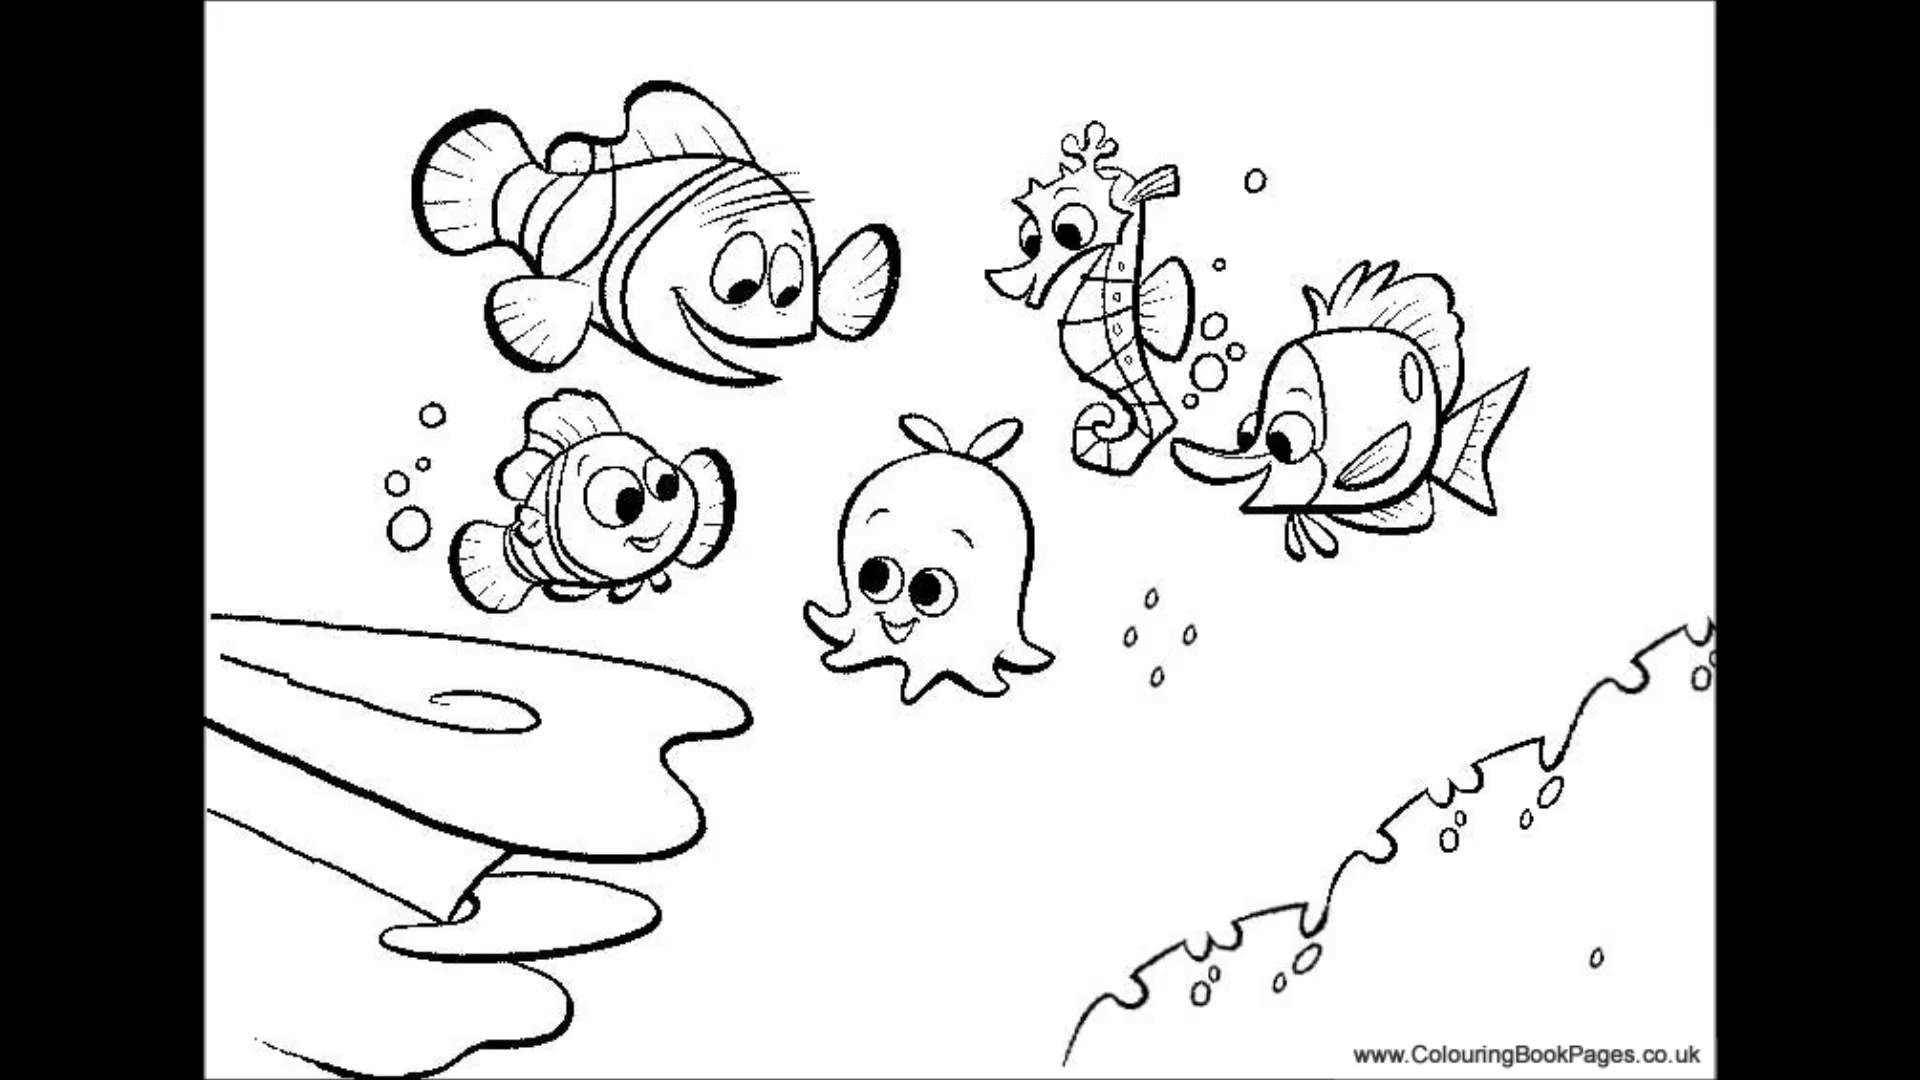 1920x1080 Terrific Finding Nemo Coloring Pages Pdf Colouring And Kids Game